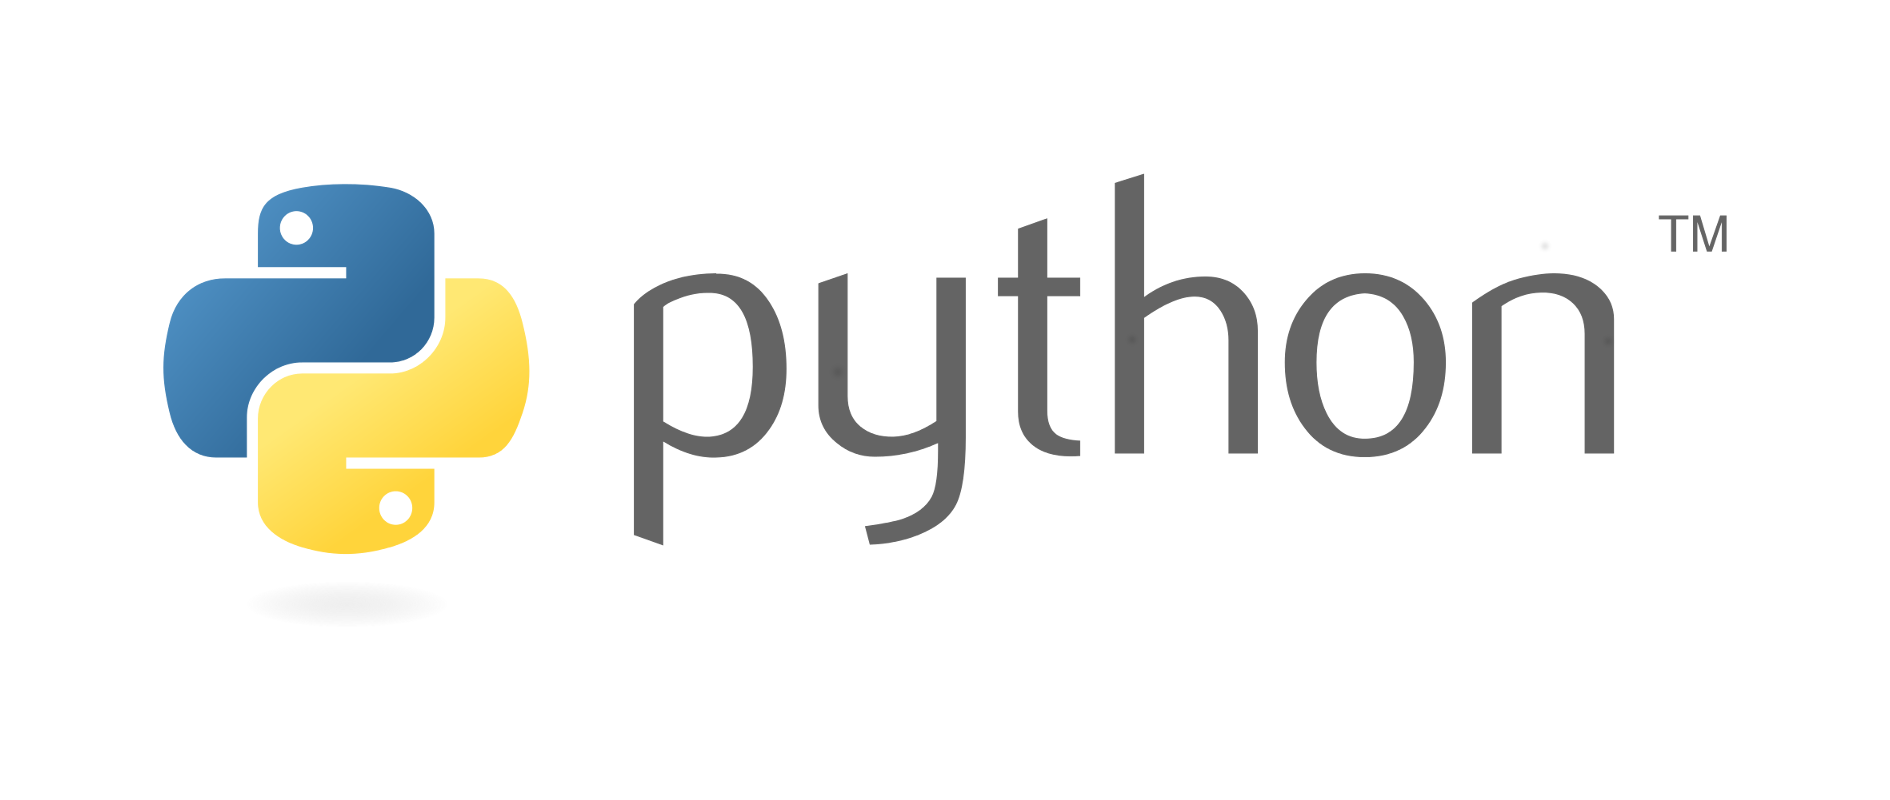 Python read png image. Help port packages to